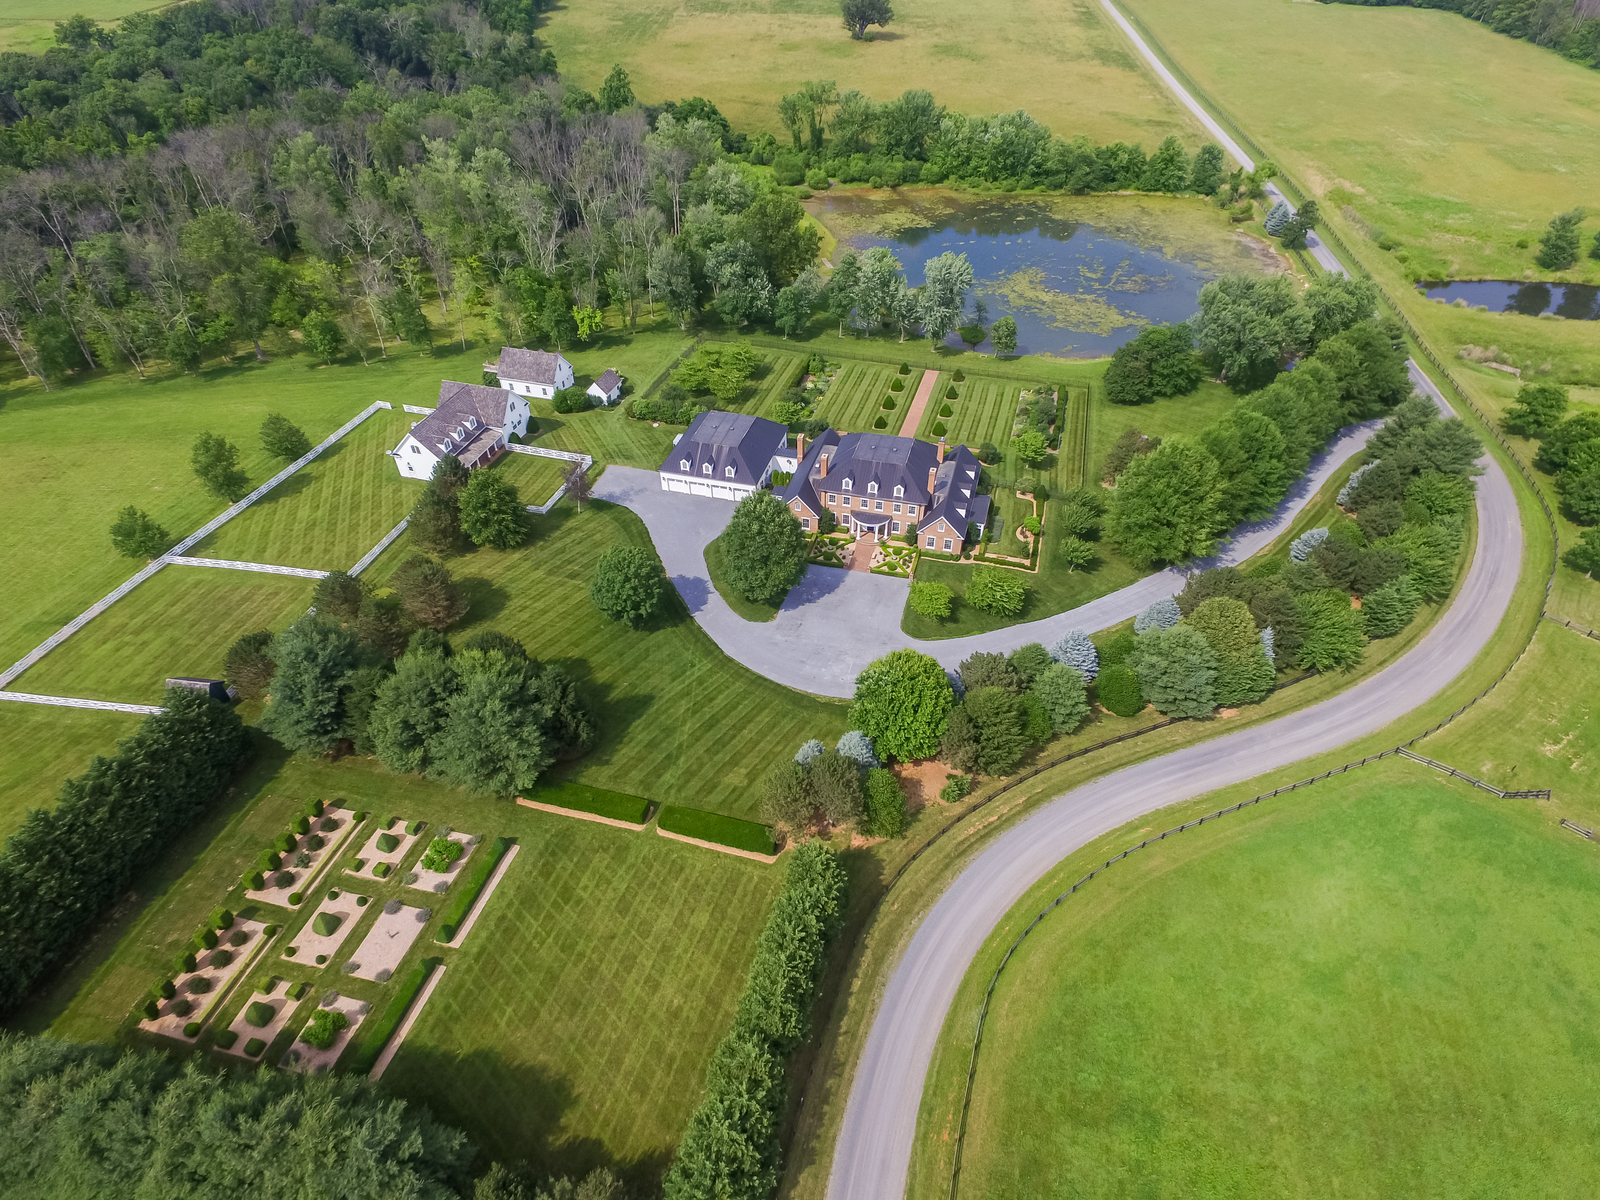 Single Family Home for Sale at Boxley Farms 18599 Calumet Ln Bluemont, Virginia 20135 United States